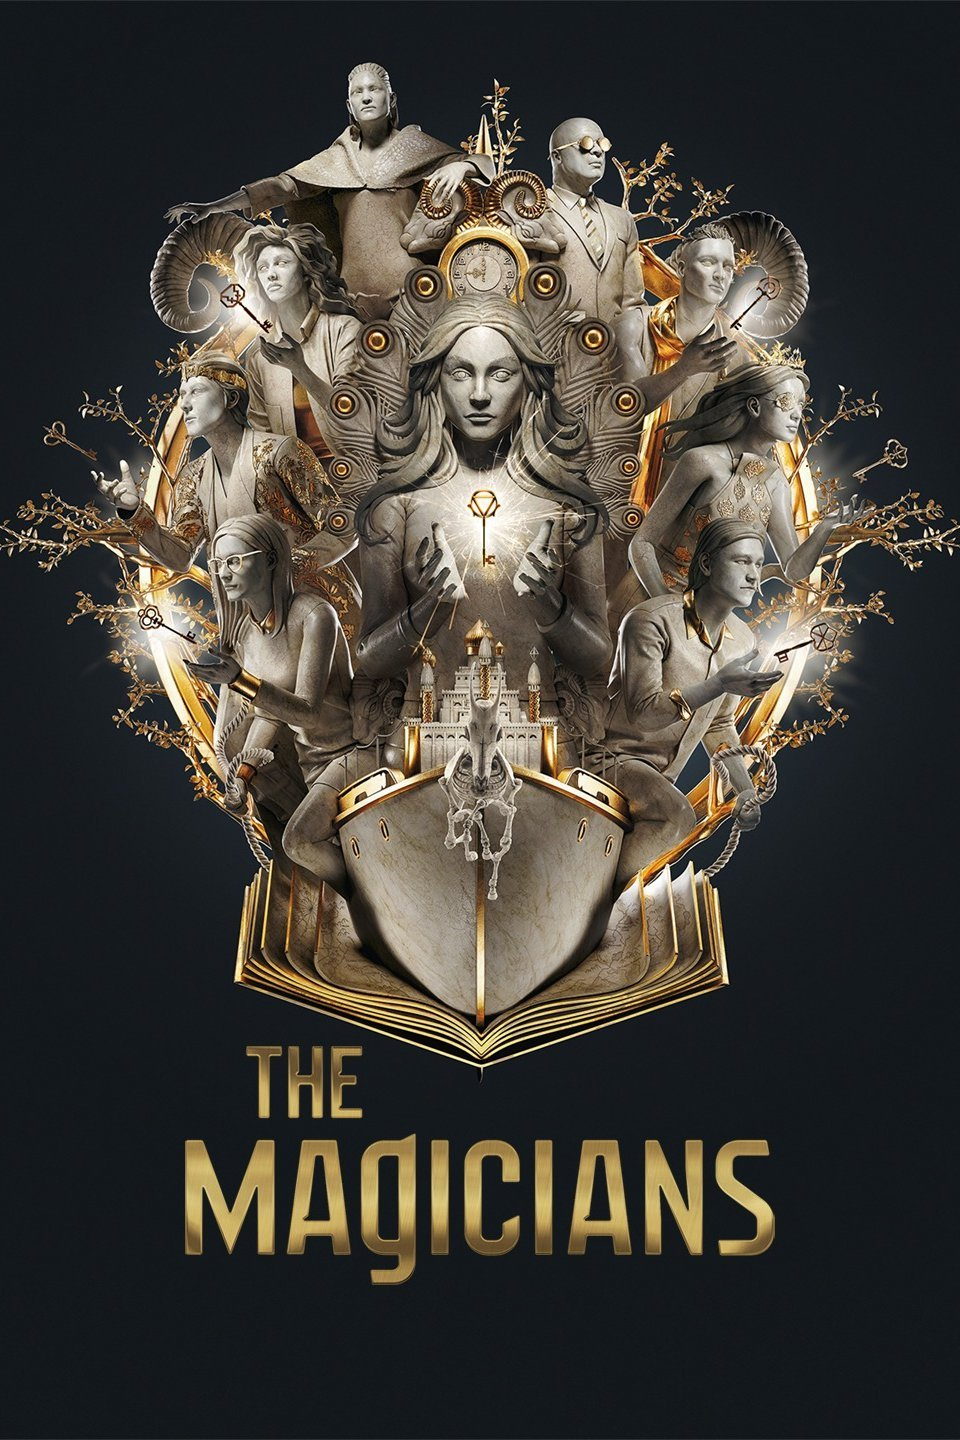 The Magicians Season 3 Episode 11 Download WEBRip